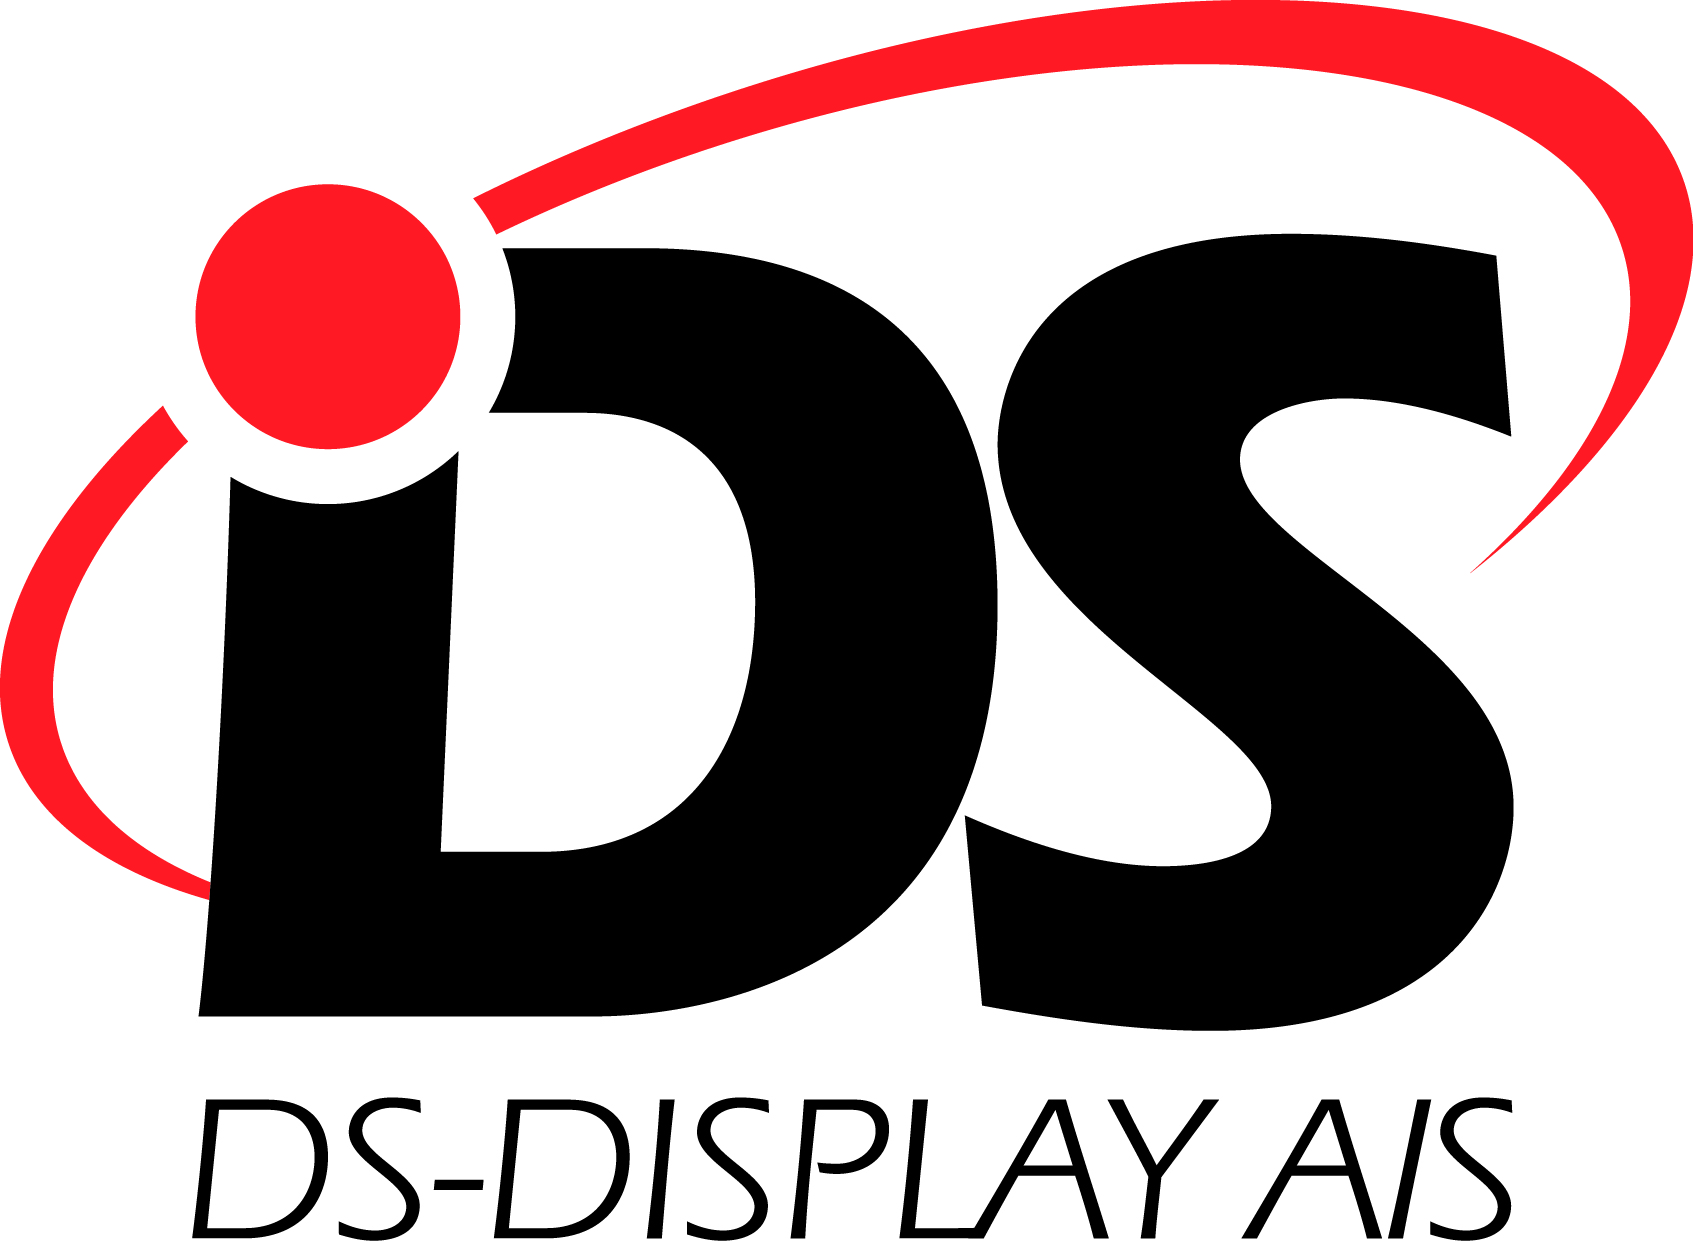 DS-Display A/S